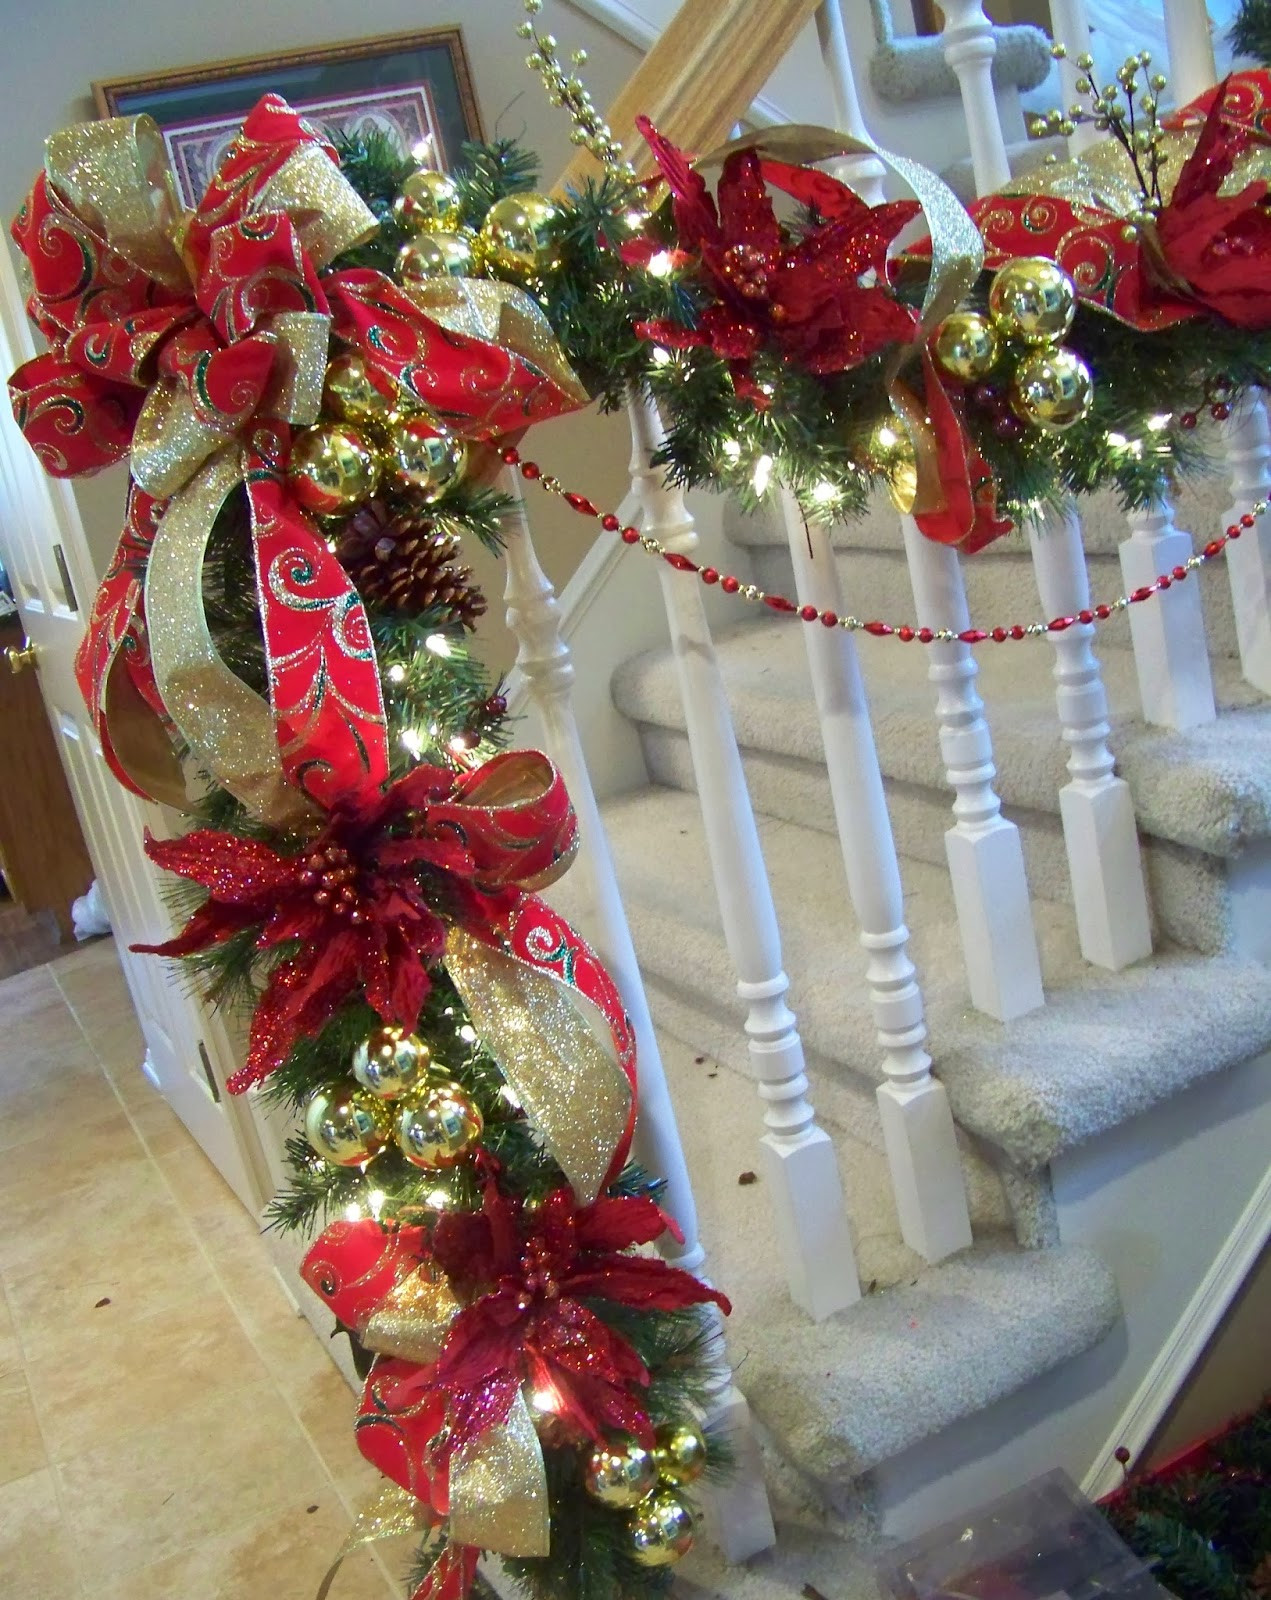 Best ideas about DIY Christmas Garland Ideas . Save or Pin 50 Best DIY Christmas Garland Decorating Ideas for 2019 Now.